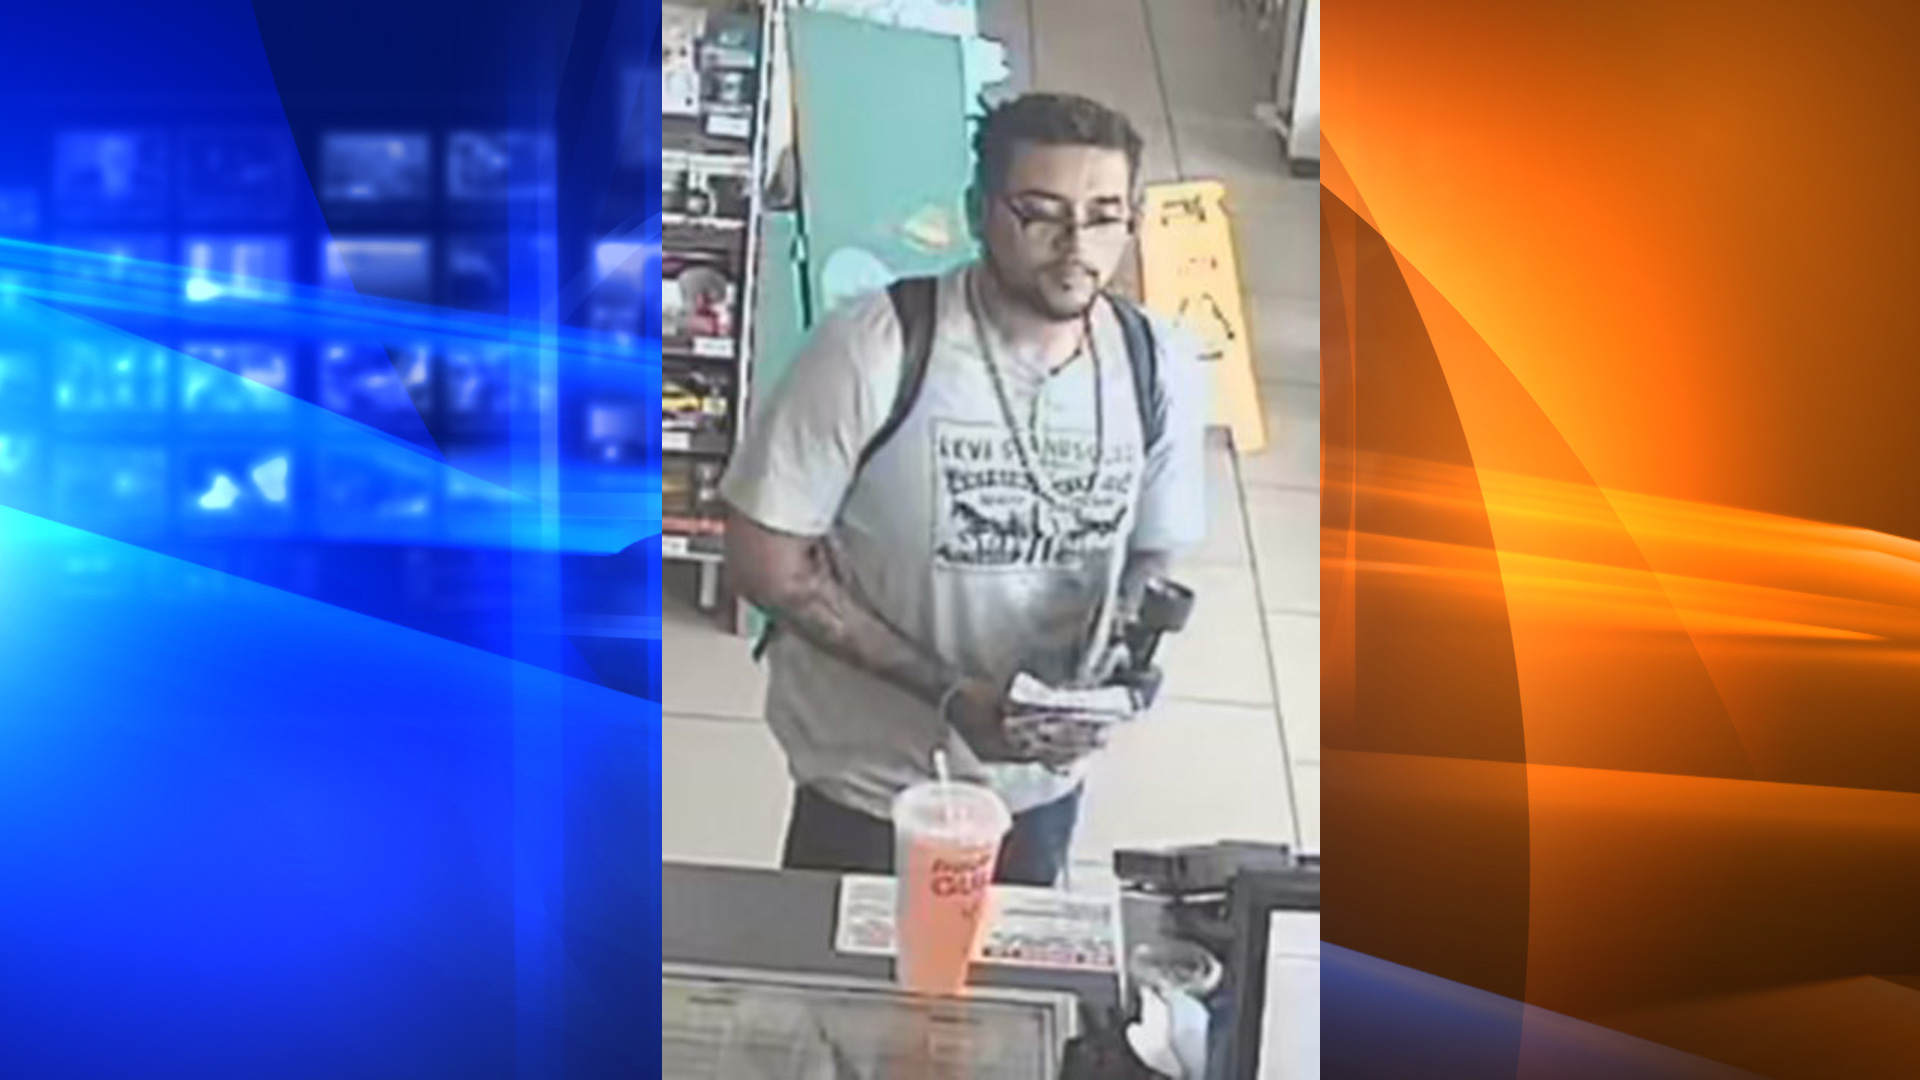 The robbery suspect is seen in surveillance video released by the Santa Ana Police Department on Feb. 27, 2020.